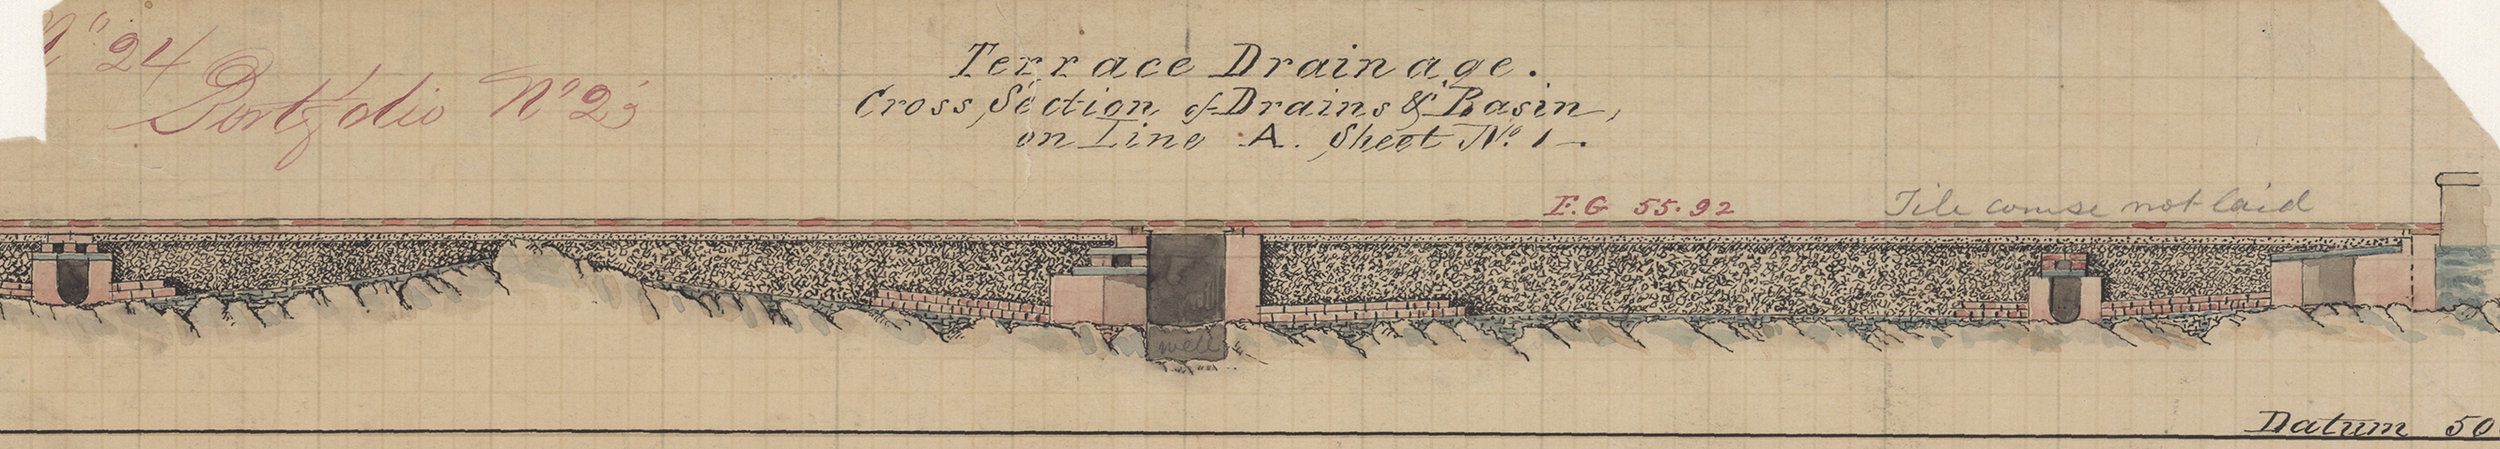 Plan of Terrace drainage, showing drains and basin, 1863. Black and red ink colored washes and pencil on graph paper, 16 x 13 inches